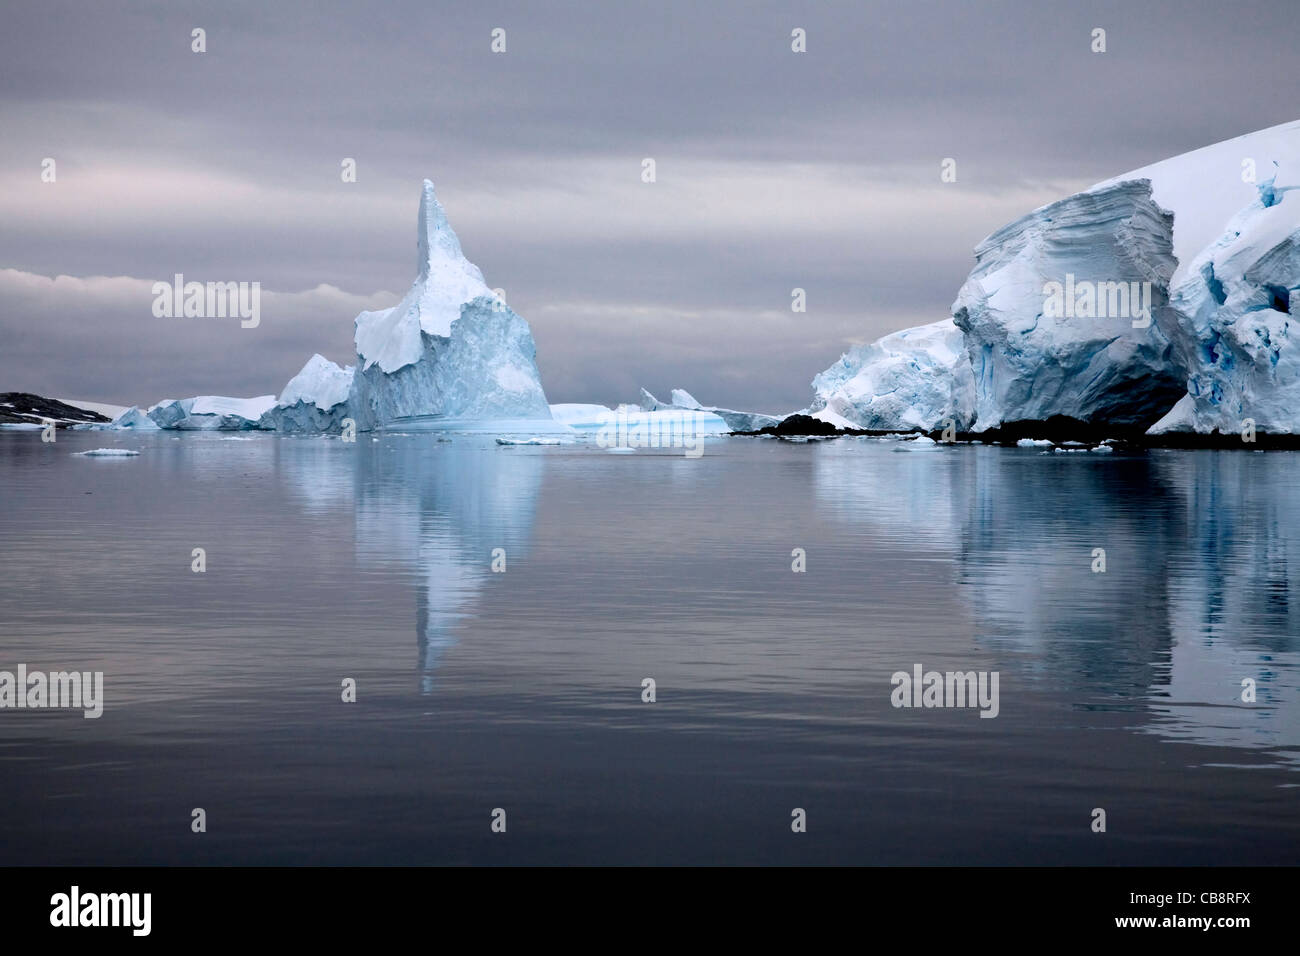 Icebergs in the Lemaire Channel / Kodak Gap, Antarctica - Stock Image